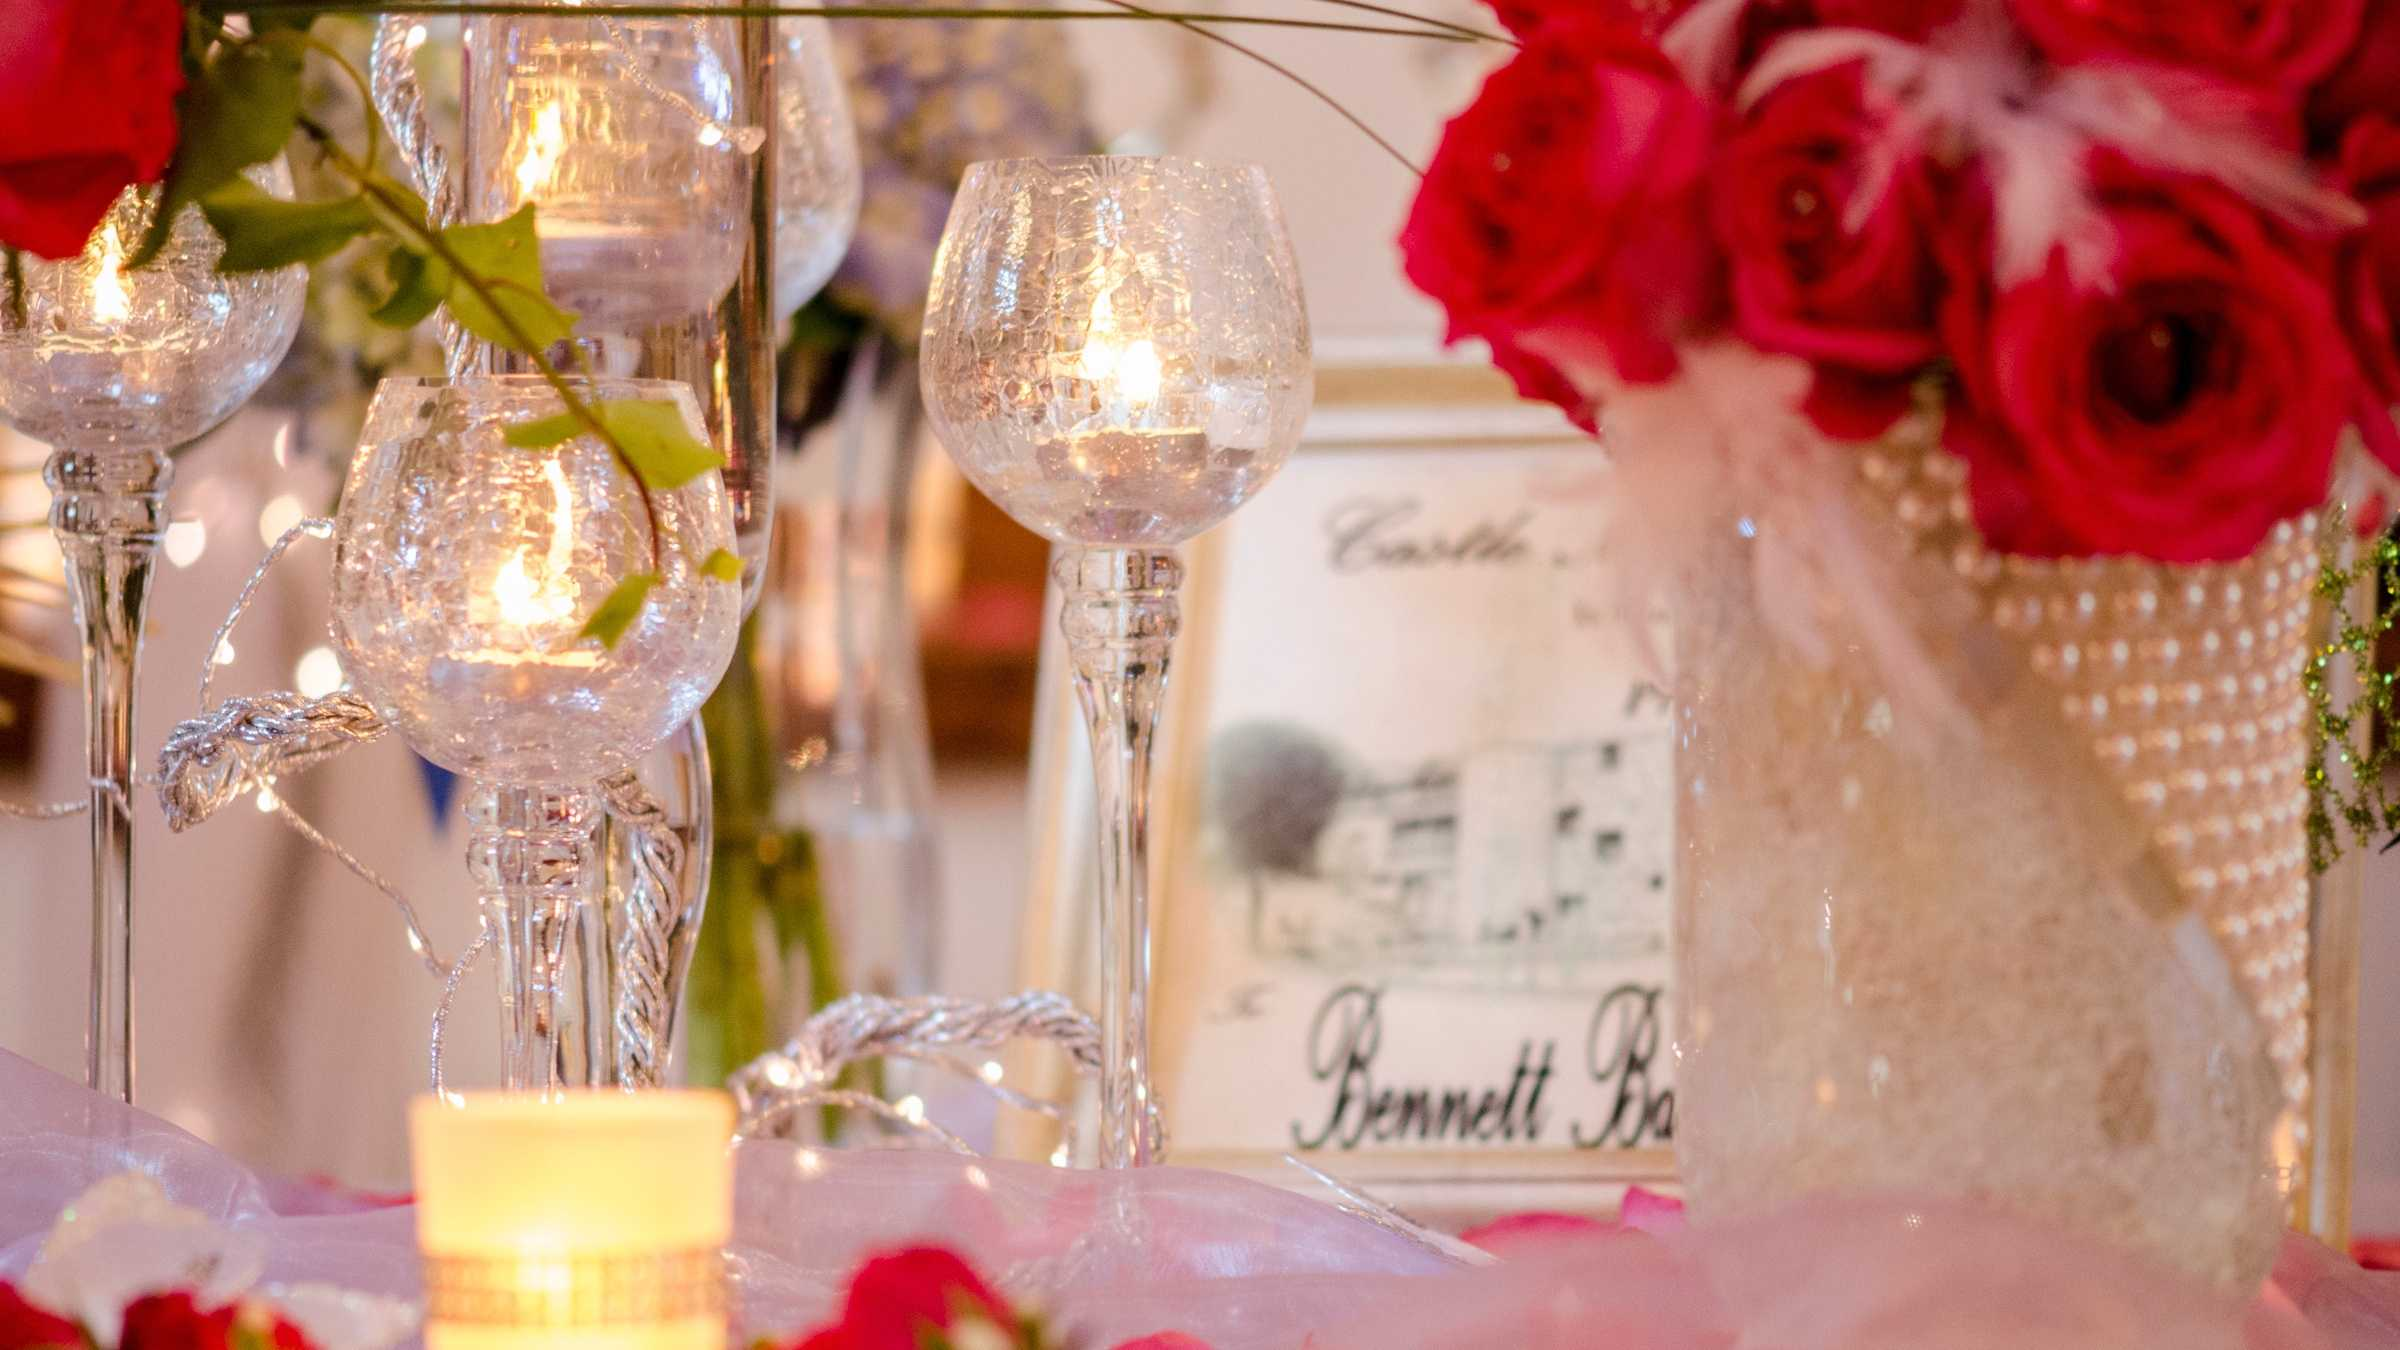 Bennett's Baskets N Bows had some beautiful crystal candle holders and roses that could decorate the reception tables for a Red Carpet Themed Wedding. (WinMock Bridal Show)